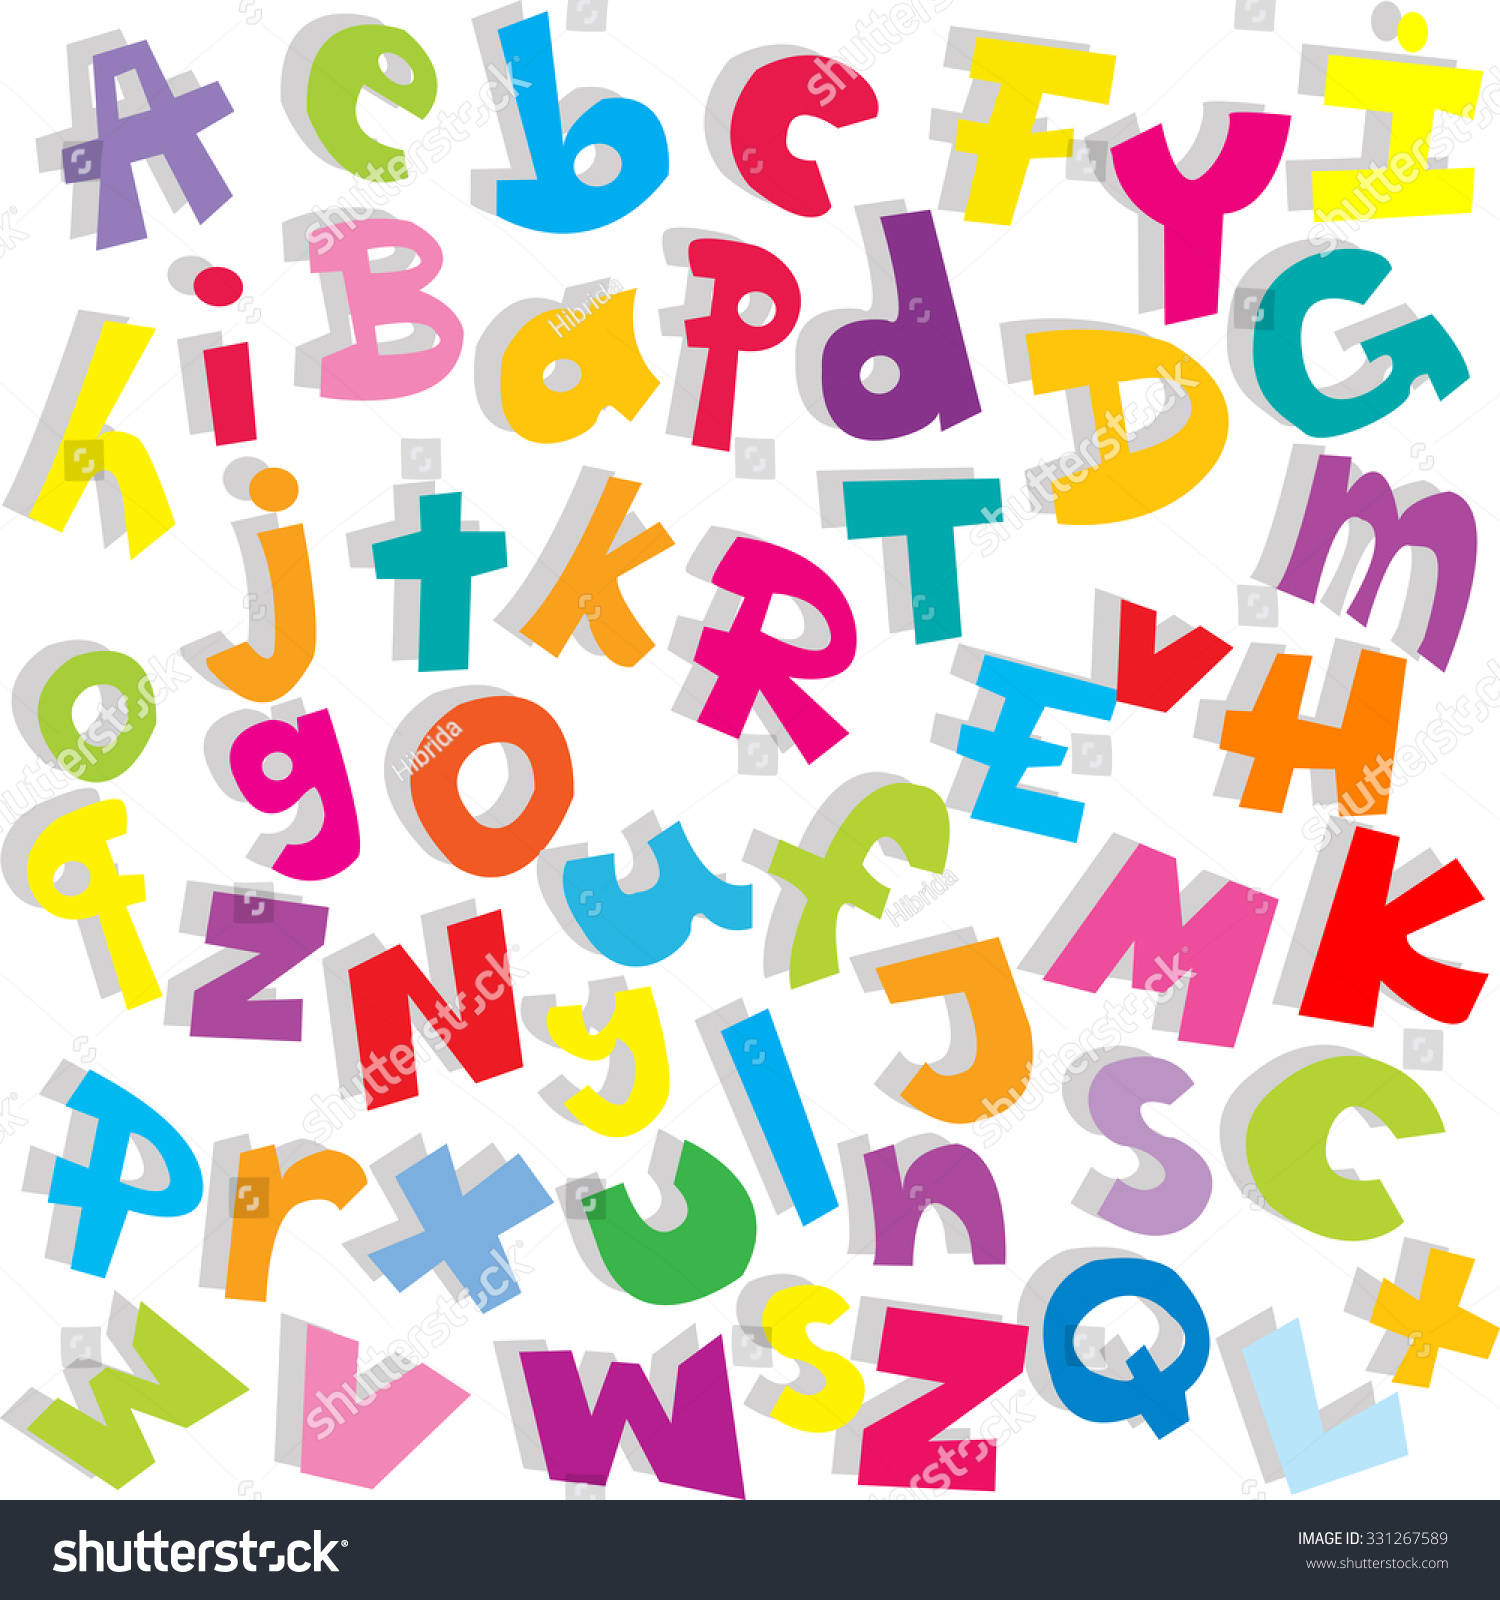 Alphabet Stock Images RoyaltyFree Images amp Vectors